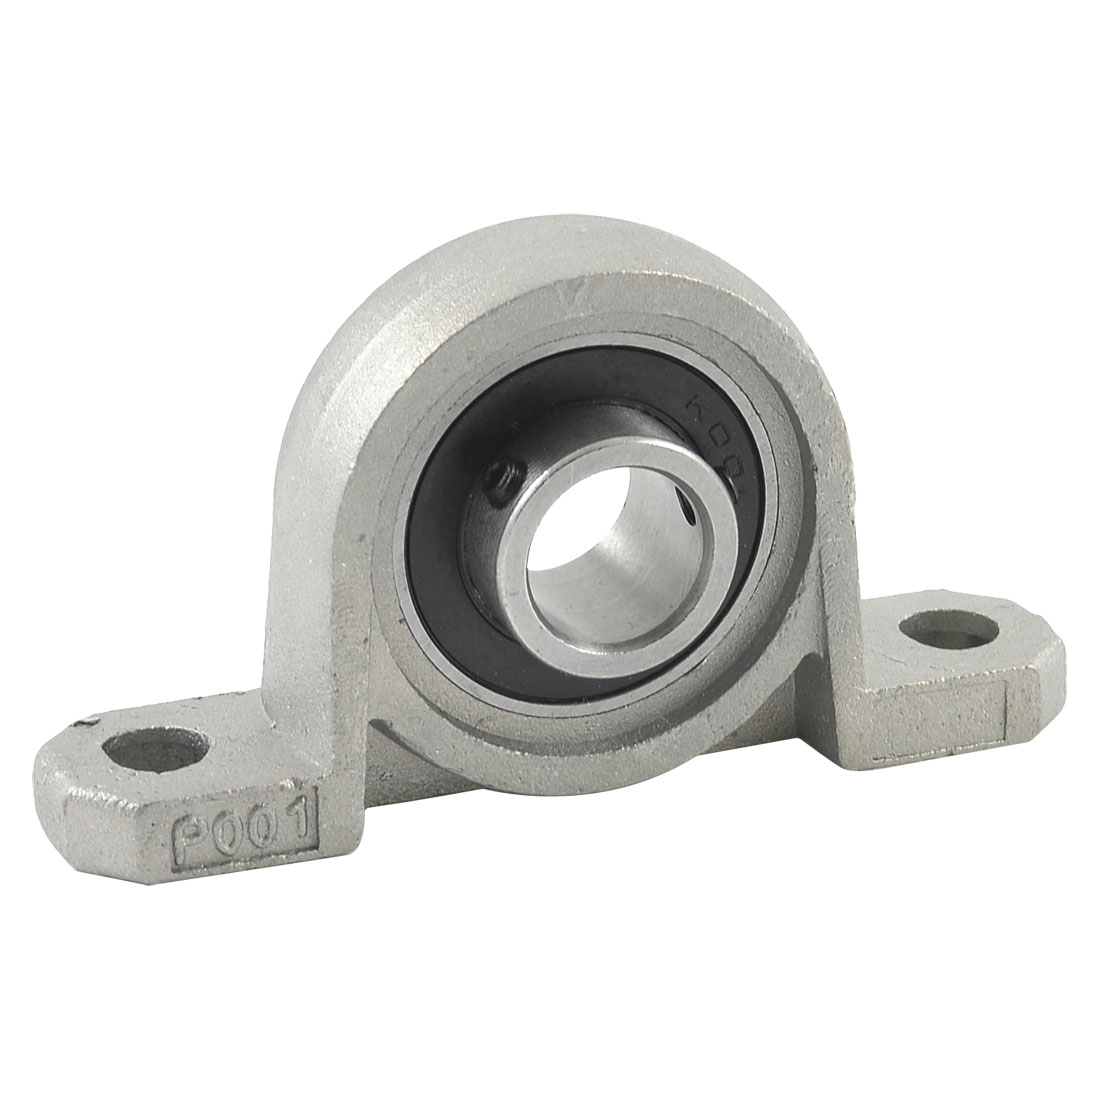 UP001 Pillow Block 12mm Bore Diameter Ball Bearing Stainless Steel